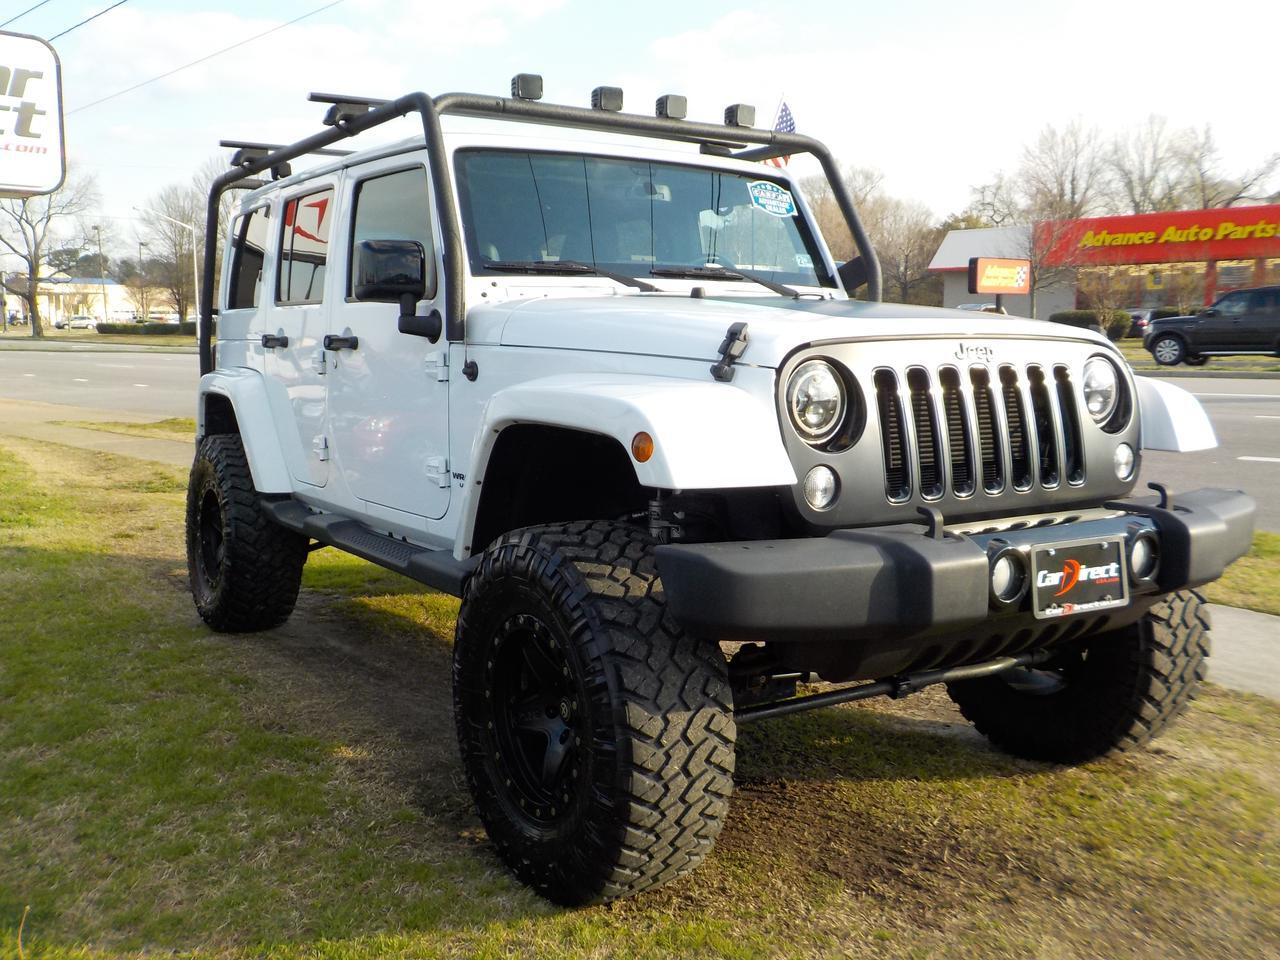 2014 JEEP WRANGLER UNLIMITED SAHARA 4X4, WARRANTY, ROOF RACKS, LEATHER, NAVIGATION, BLUETOOTH, REMOTE START, TOW! Virginia Beach VA